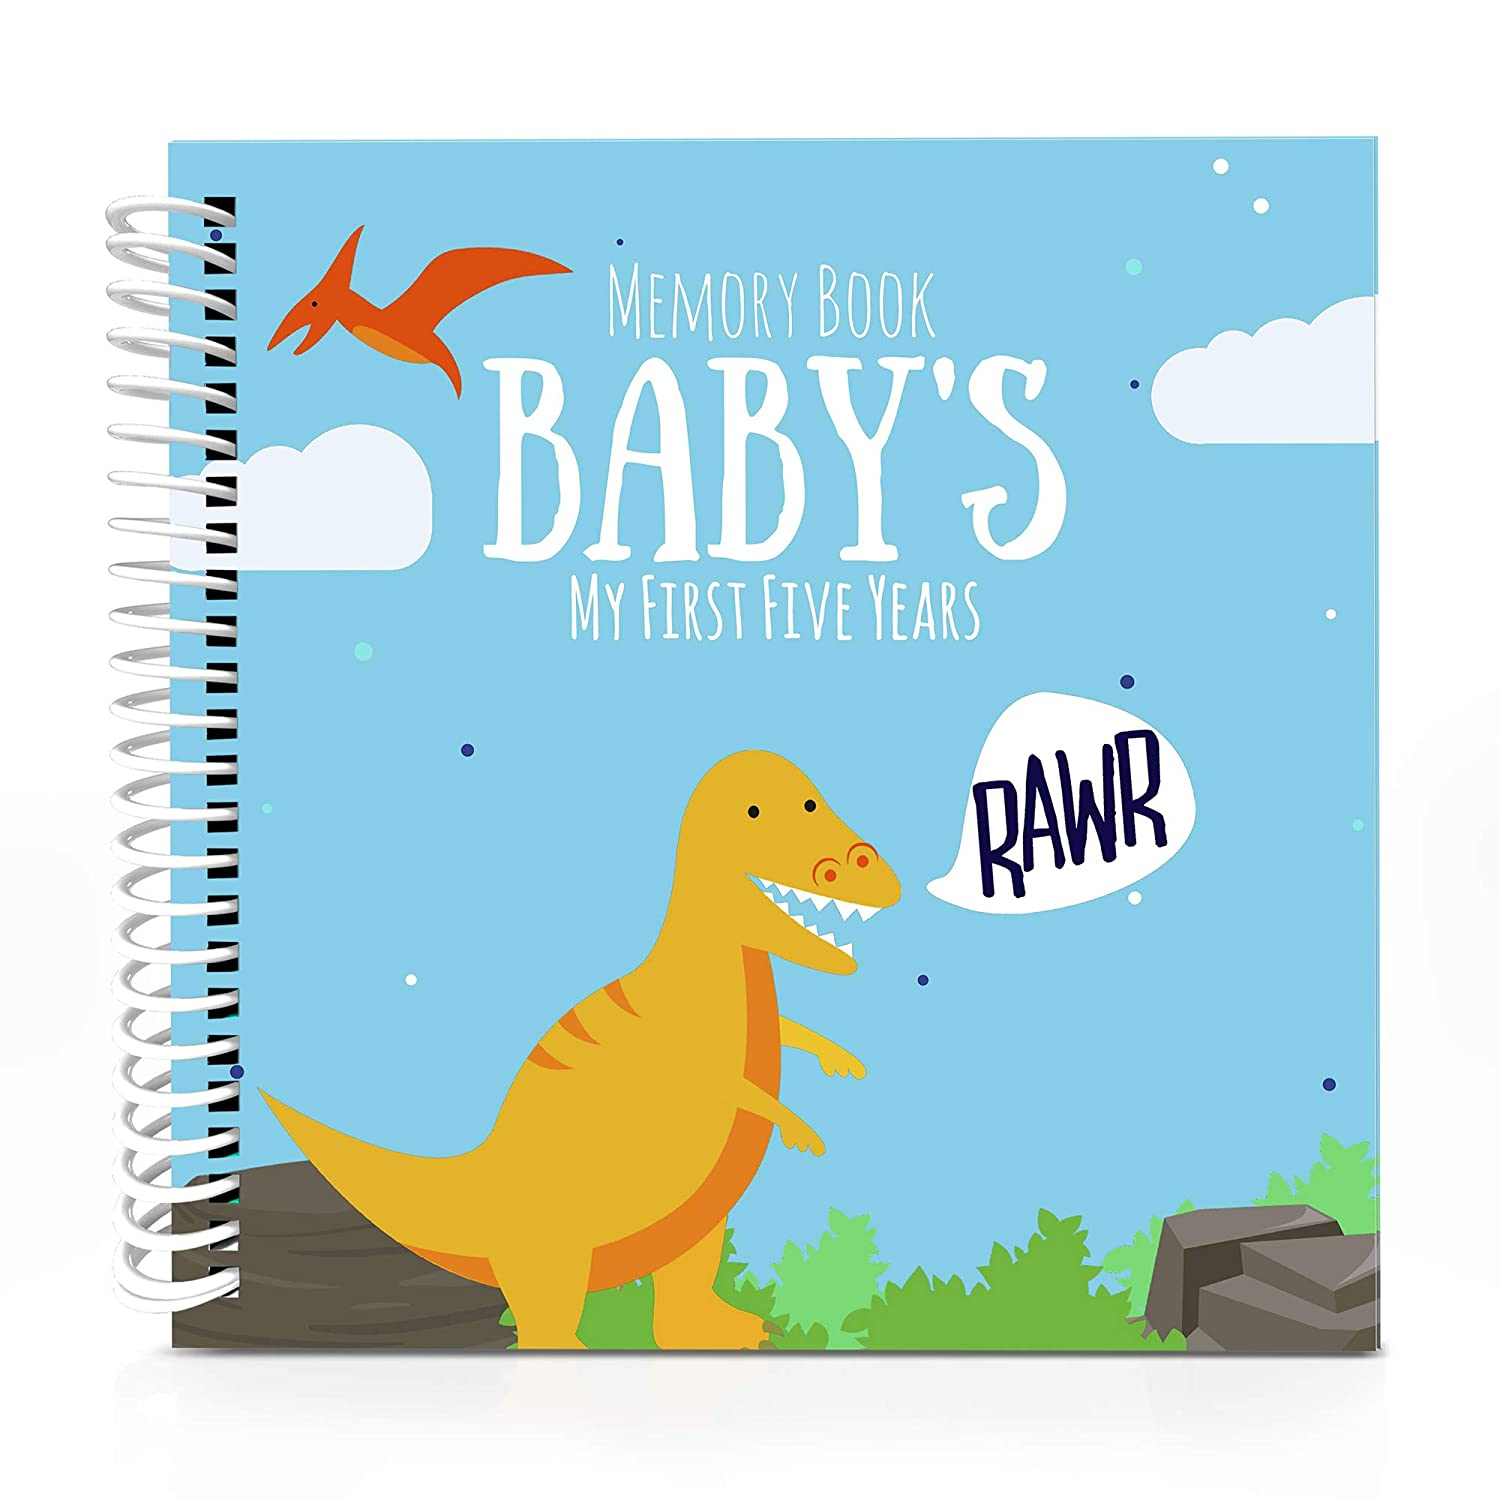 Dinosaur T-Rex Edition Baby's First Five Years Memory Book with Stickers - Newborn Hard Cover Journal - Babies Personalized Keepsake Scrapbook - Baby 5 Years Milestone Photo Album